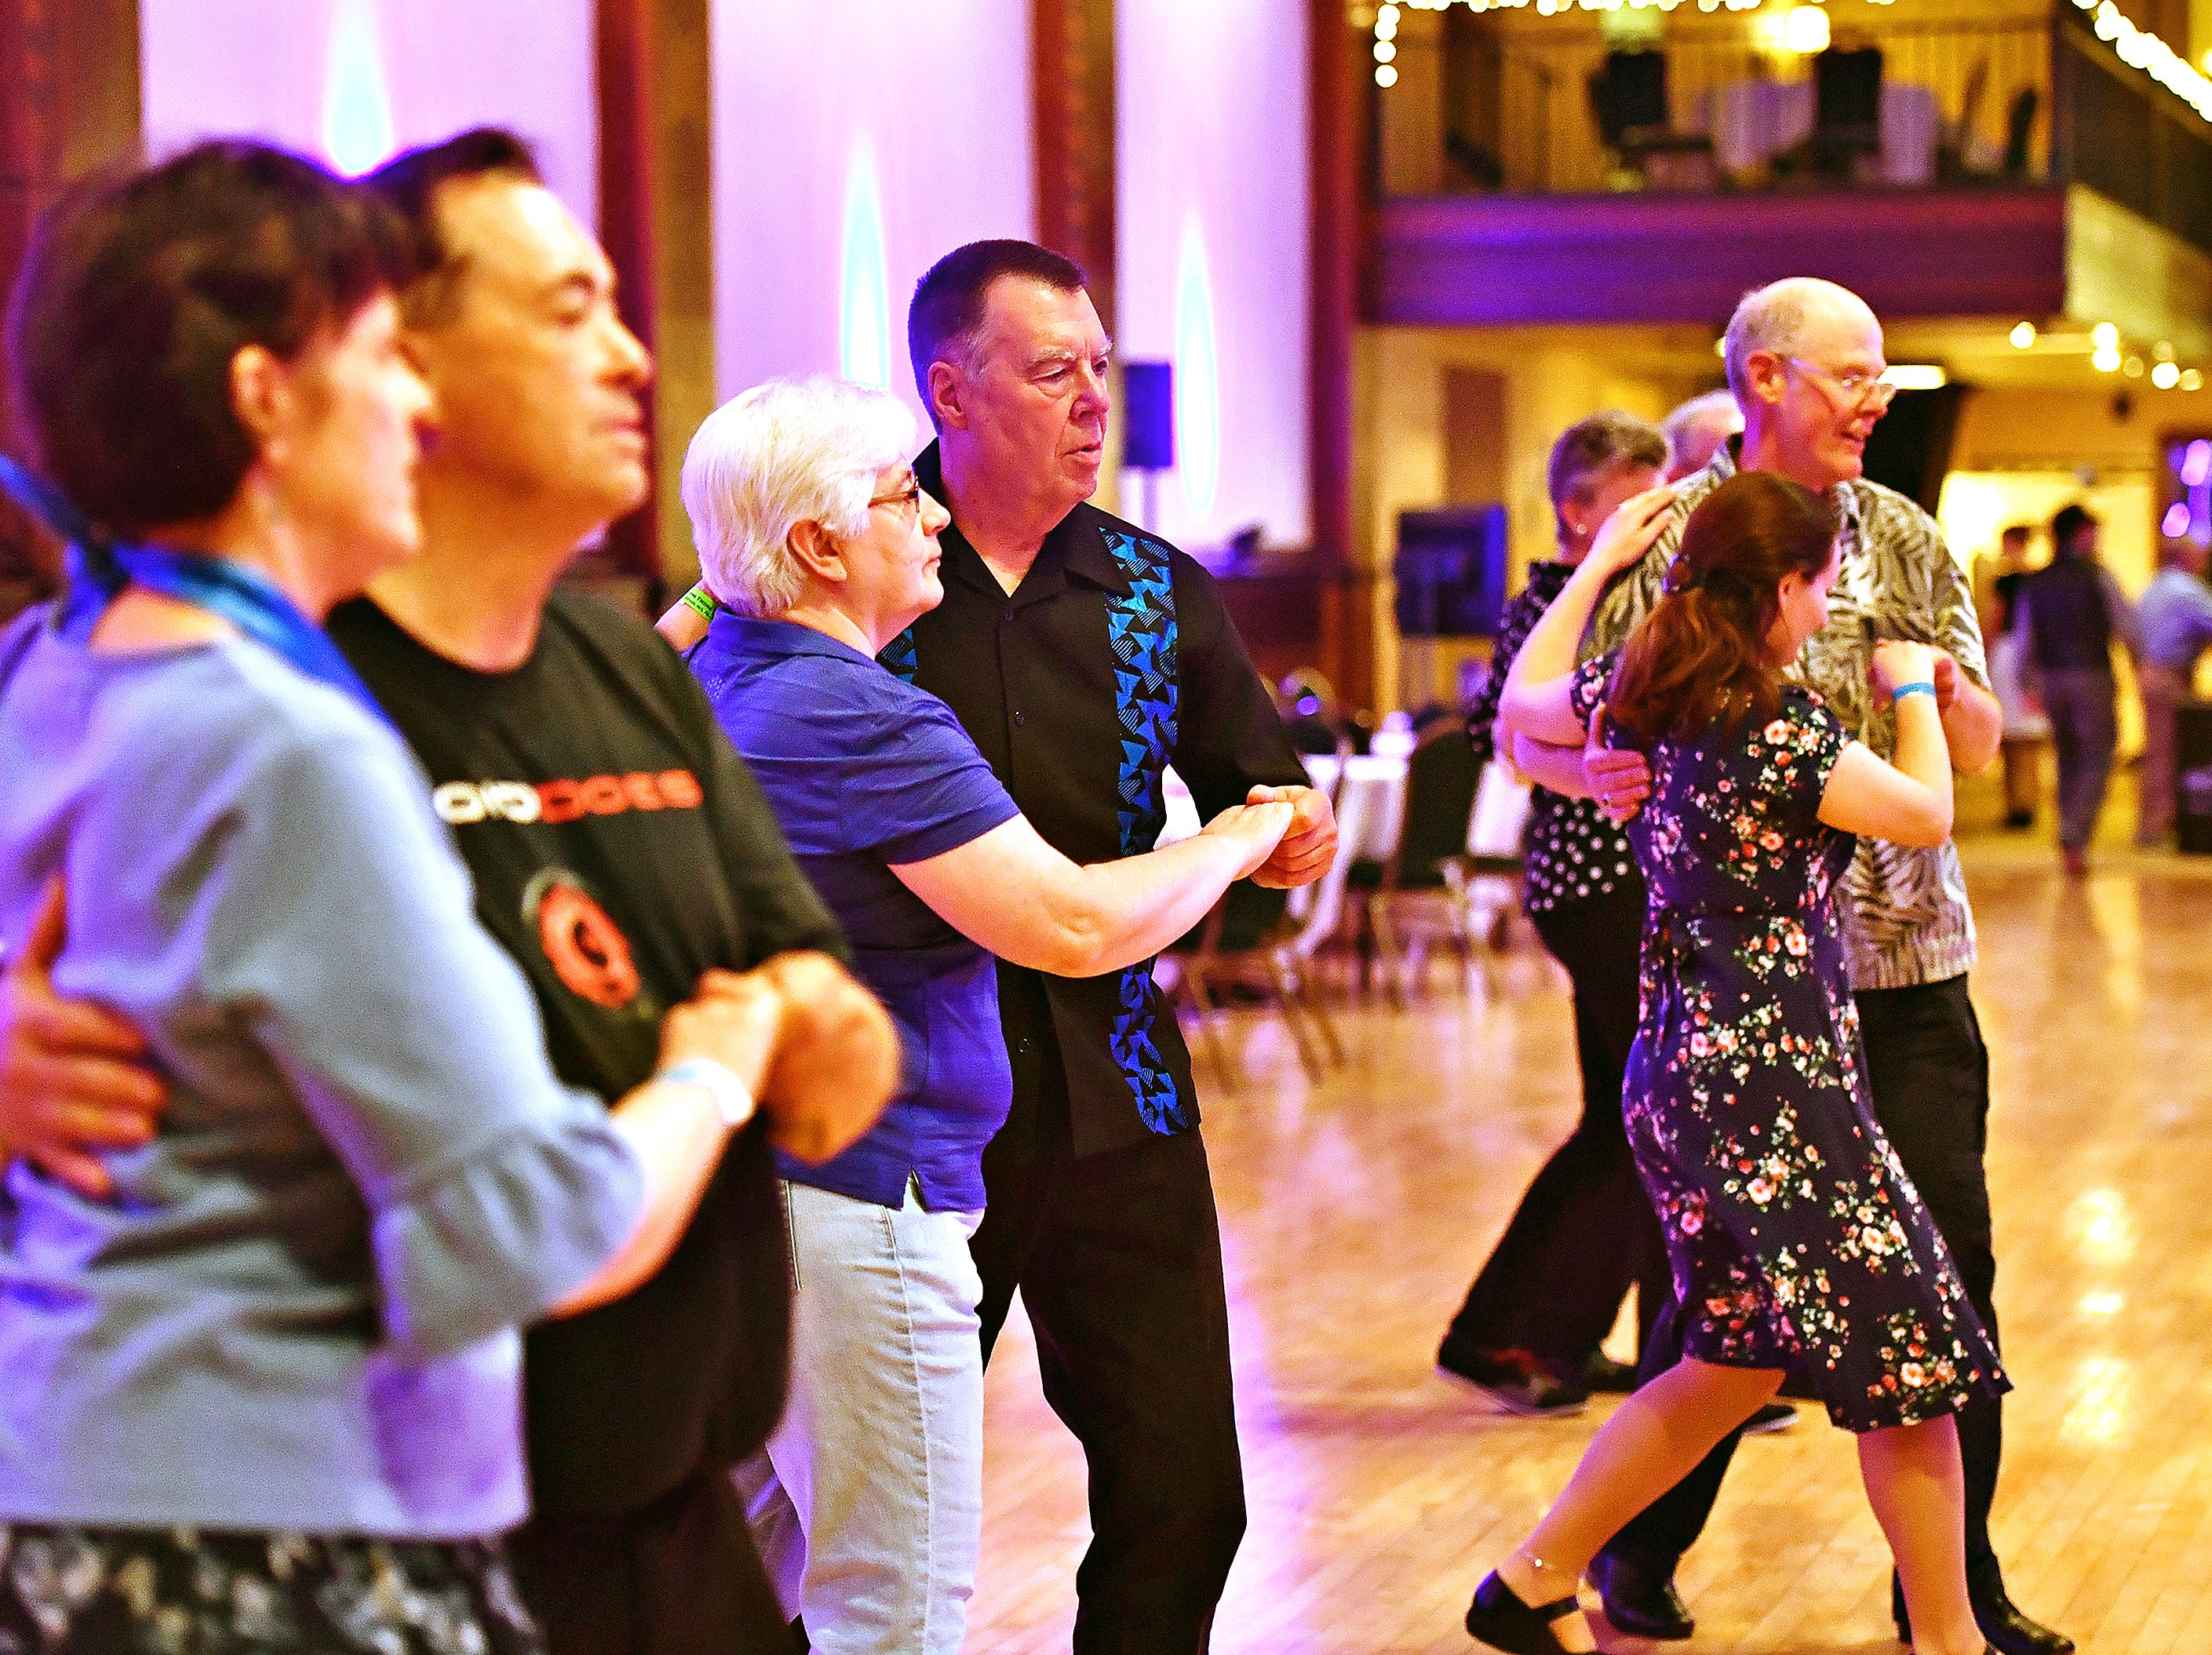 From left, Mary Anne Gladfelter, of Elizabethtown, Leslie Schuermann, of Culpeper, Va., Tammy Blake, of Baltimore, Md., Jessica Quinn, of York City, and Steve Nichols of Winchester, Va., participate in a Swing Class Crash Course during Big Swing Thing III Premiere Swing Music & Dance Festival at Valencia Ballroom in York City, Friday, April 12, 2019. Dawn J. Sagert photo